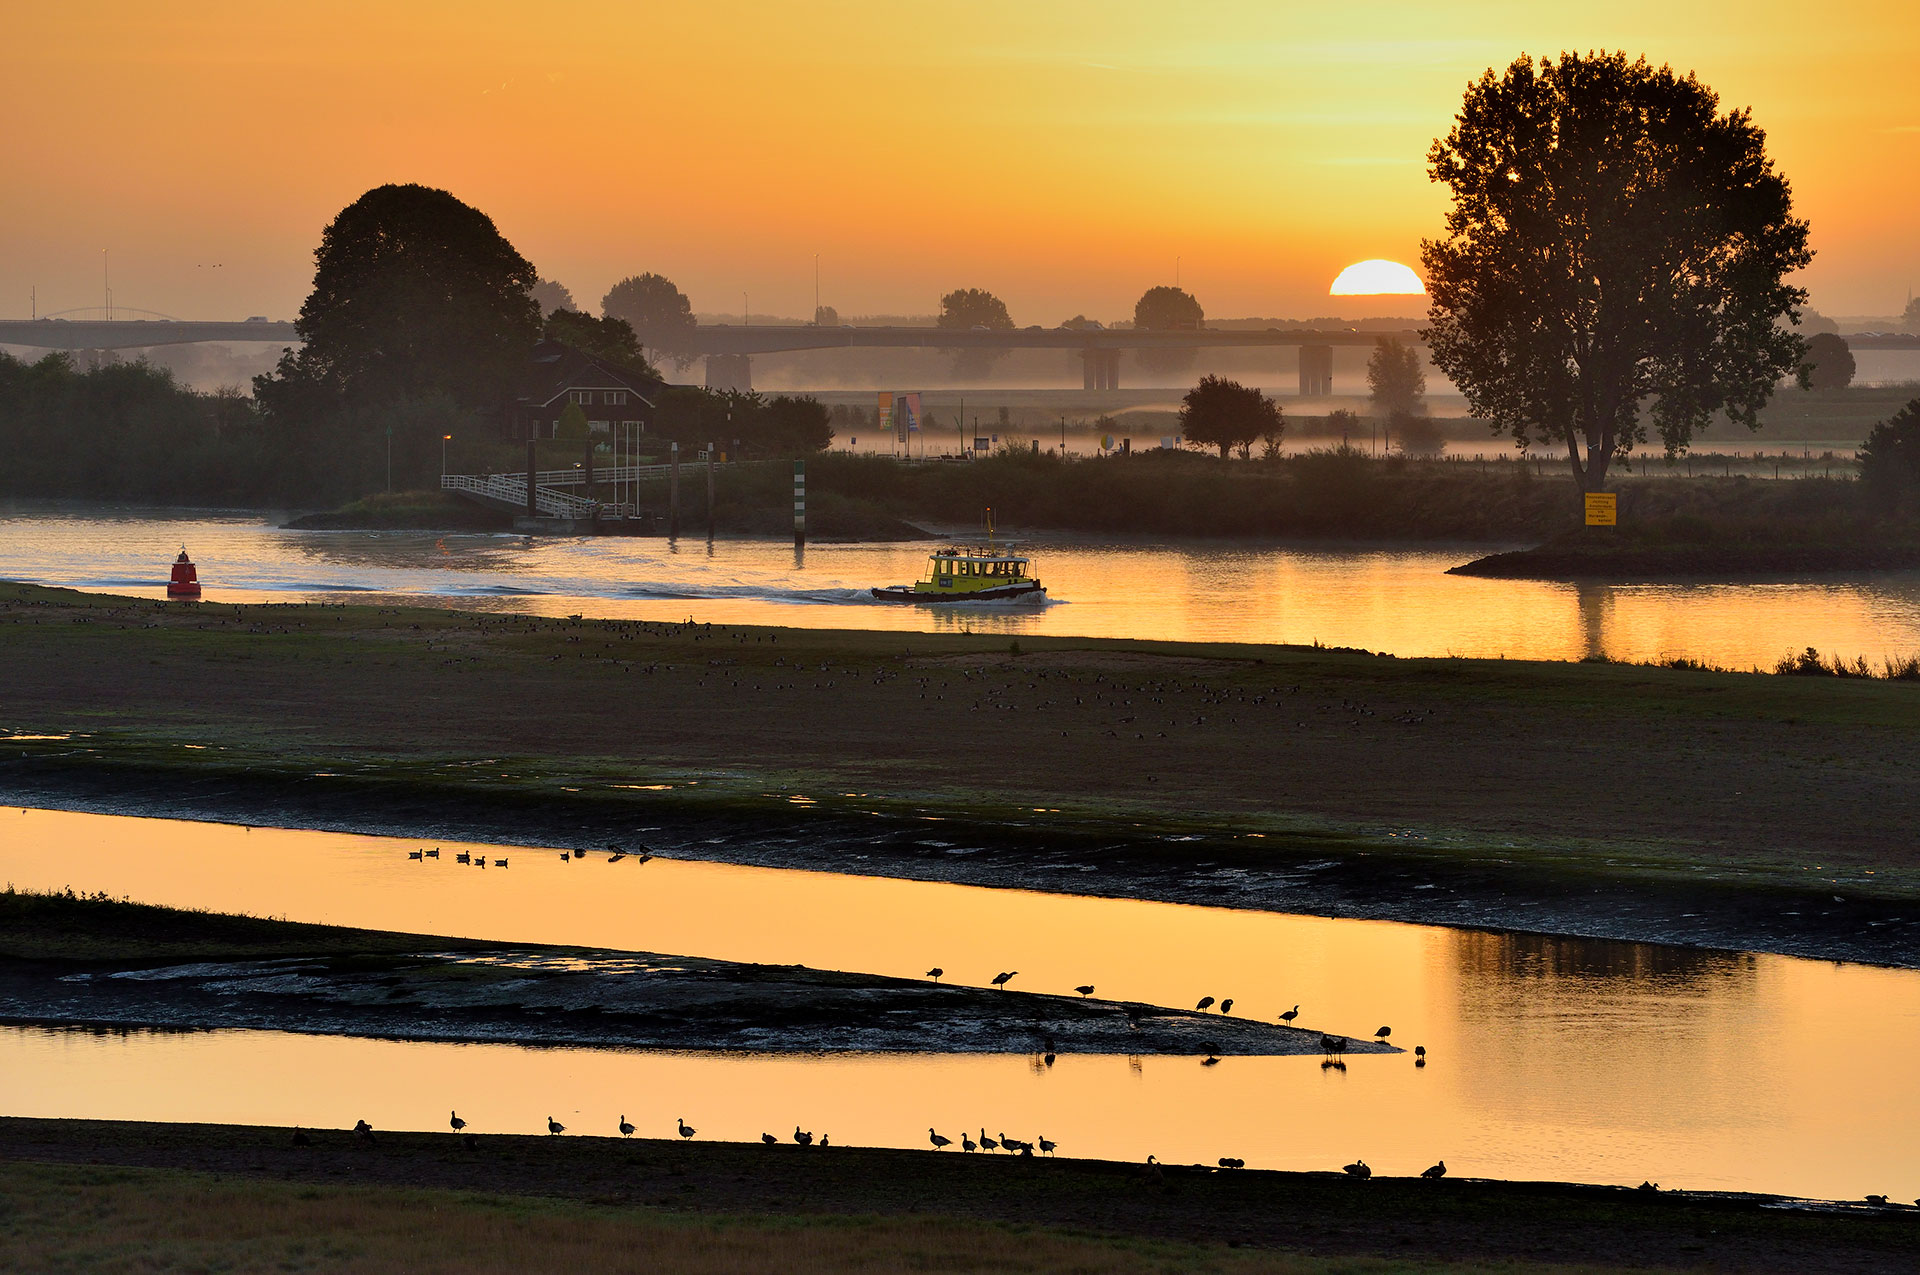 The river Lek at Nieuwegein at sunrise with ship and ferry